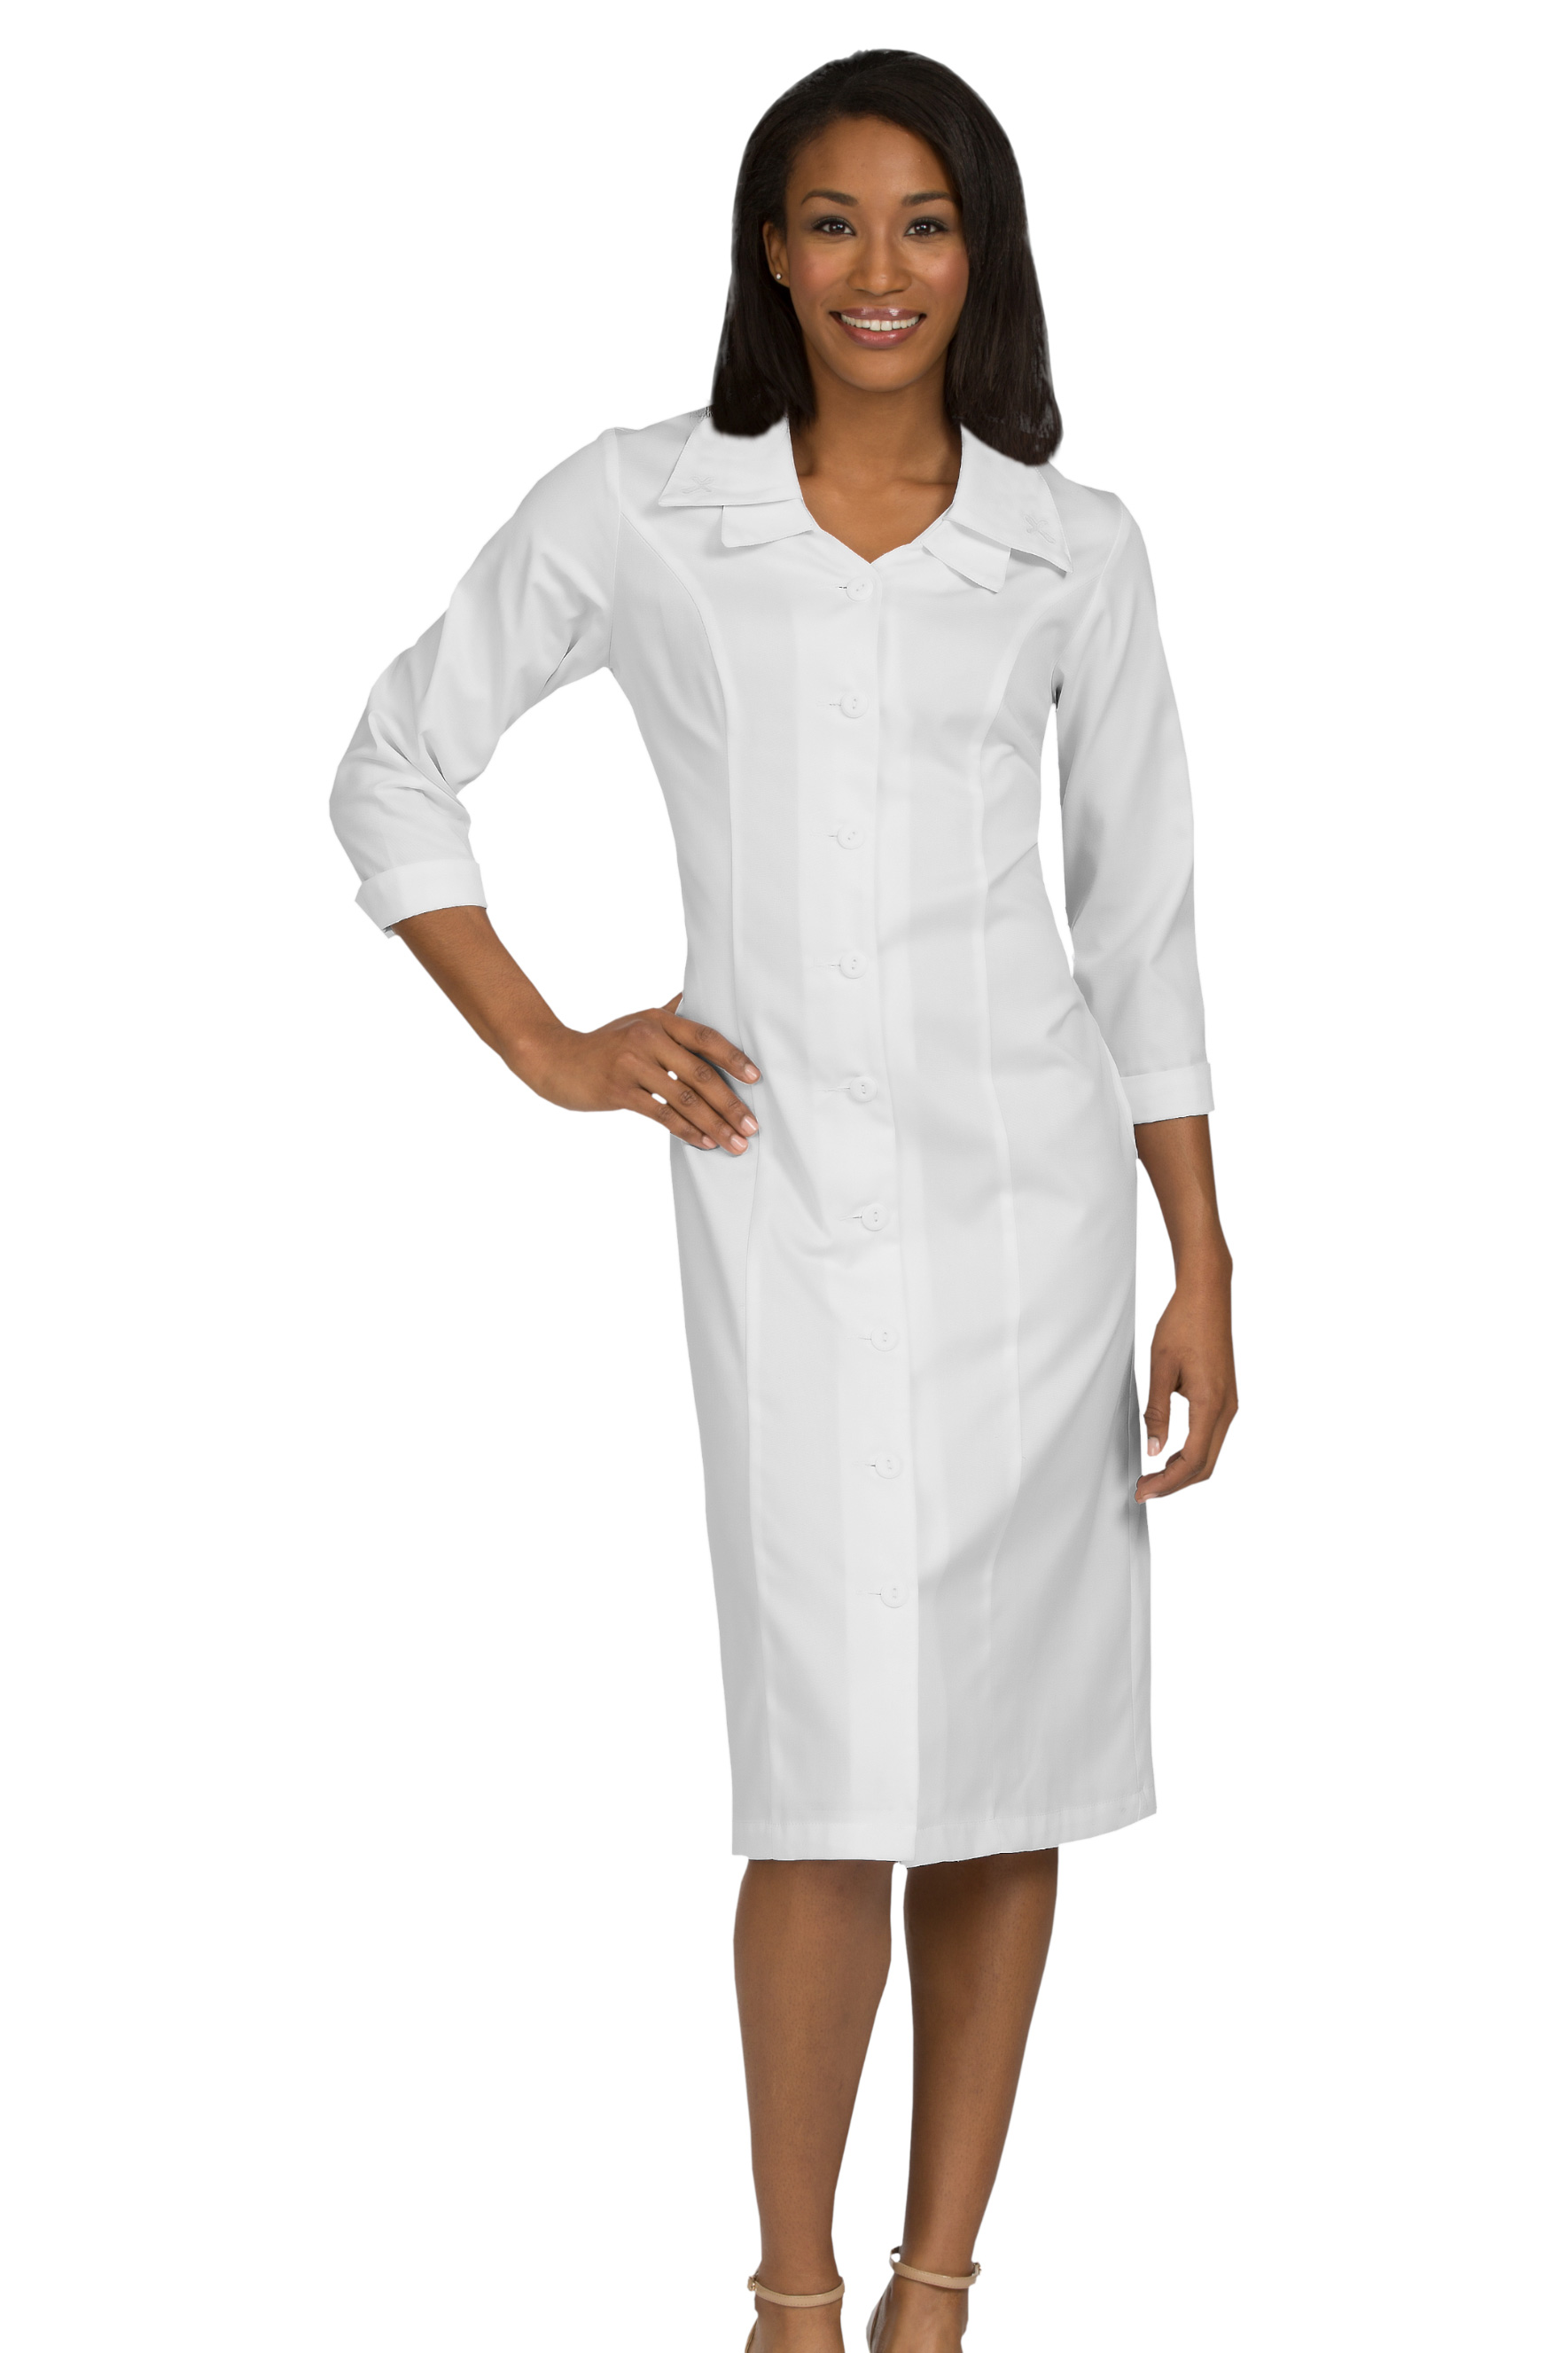 Buy Cathy Dress Women Med Couture Online At Best Price Ga